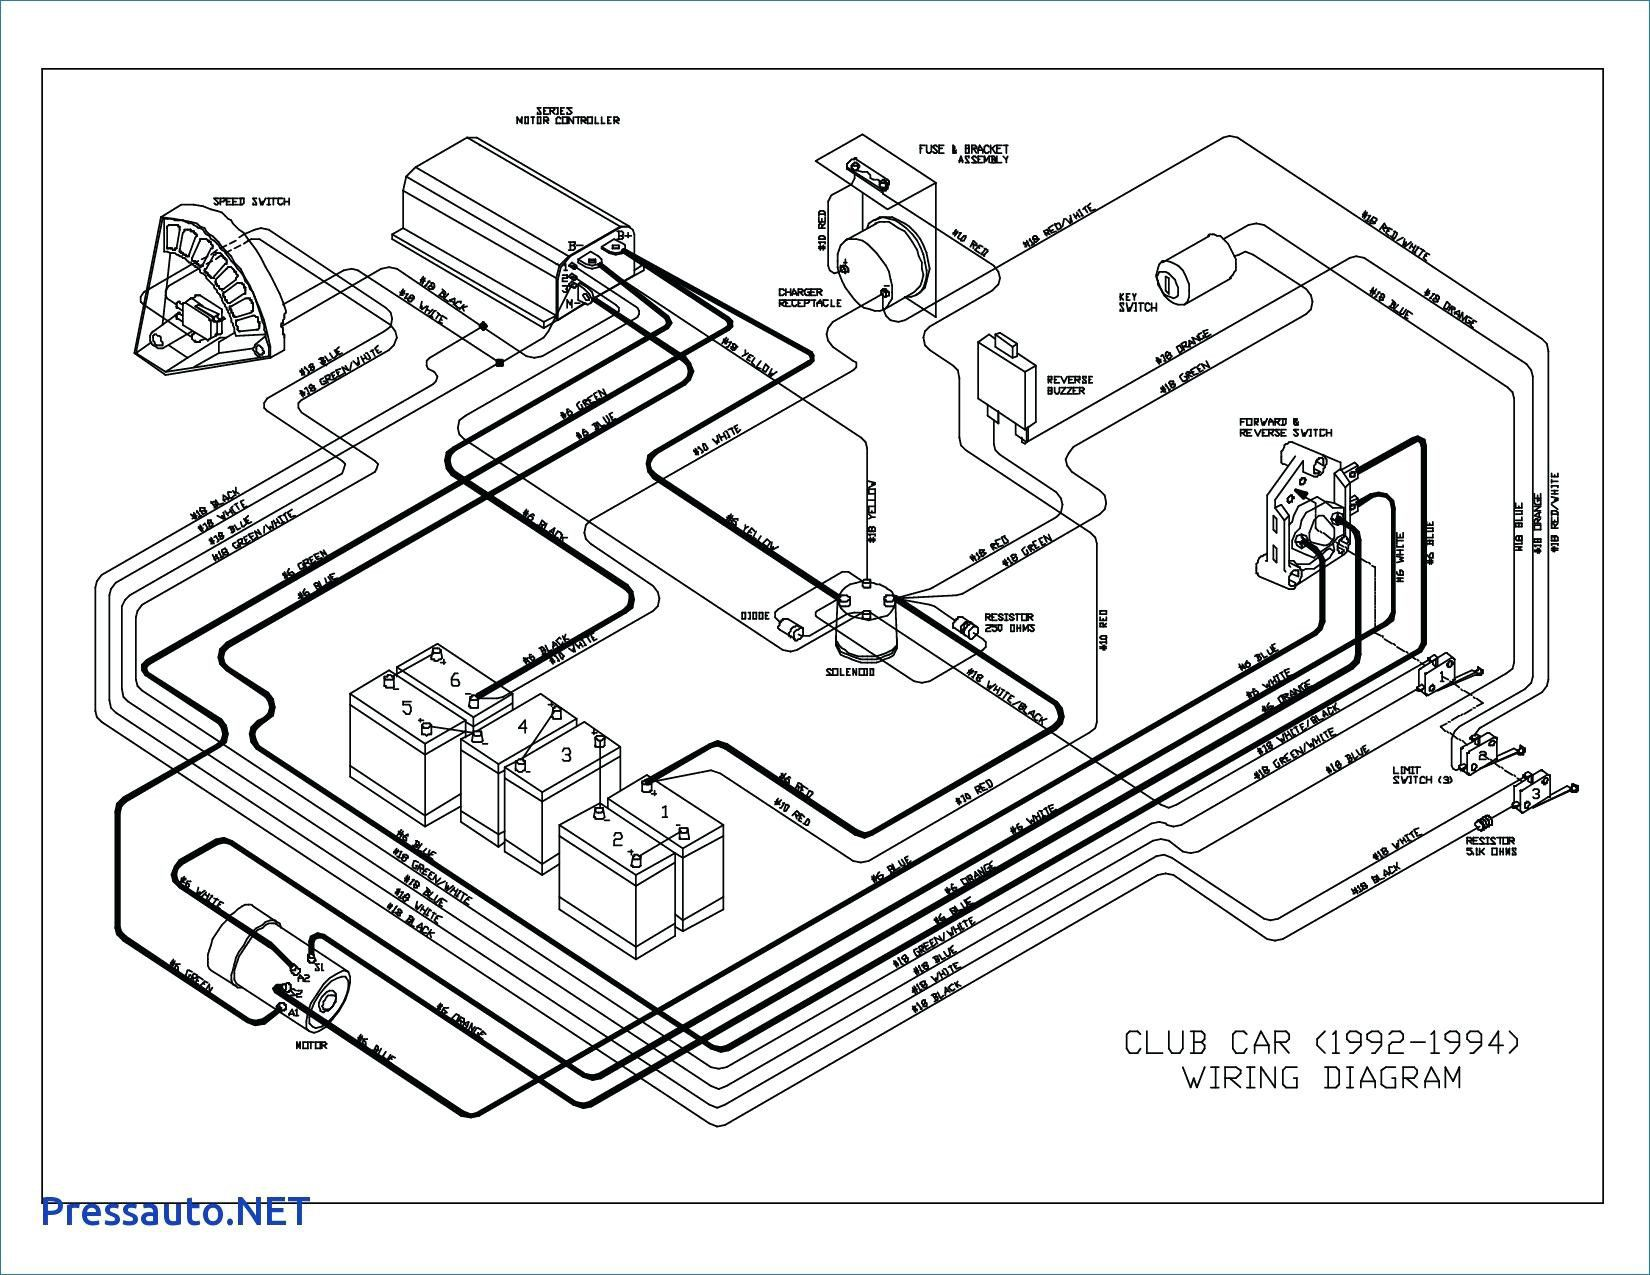 [DIAGRAM_1CA]  Hyundai Wiring Diagrams Free Awesome Wiring Diagram Hyundai Grace Van Wiring  Diagram Efcaviation Gasf | Club car golf cart, Electric golf cart, Golf  carts | Wiring Diagram Hyundai Golf Cart |  | www.pinterest.ph